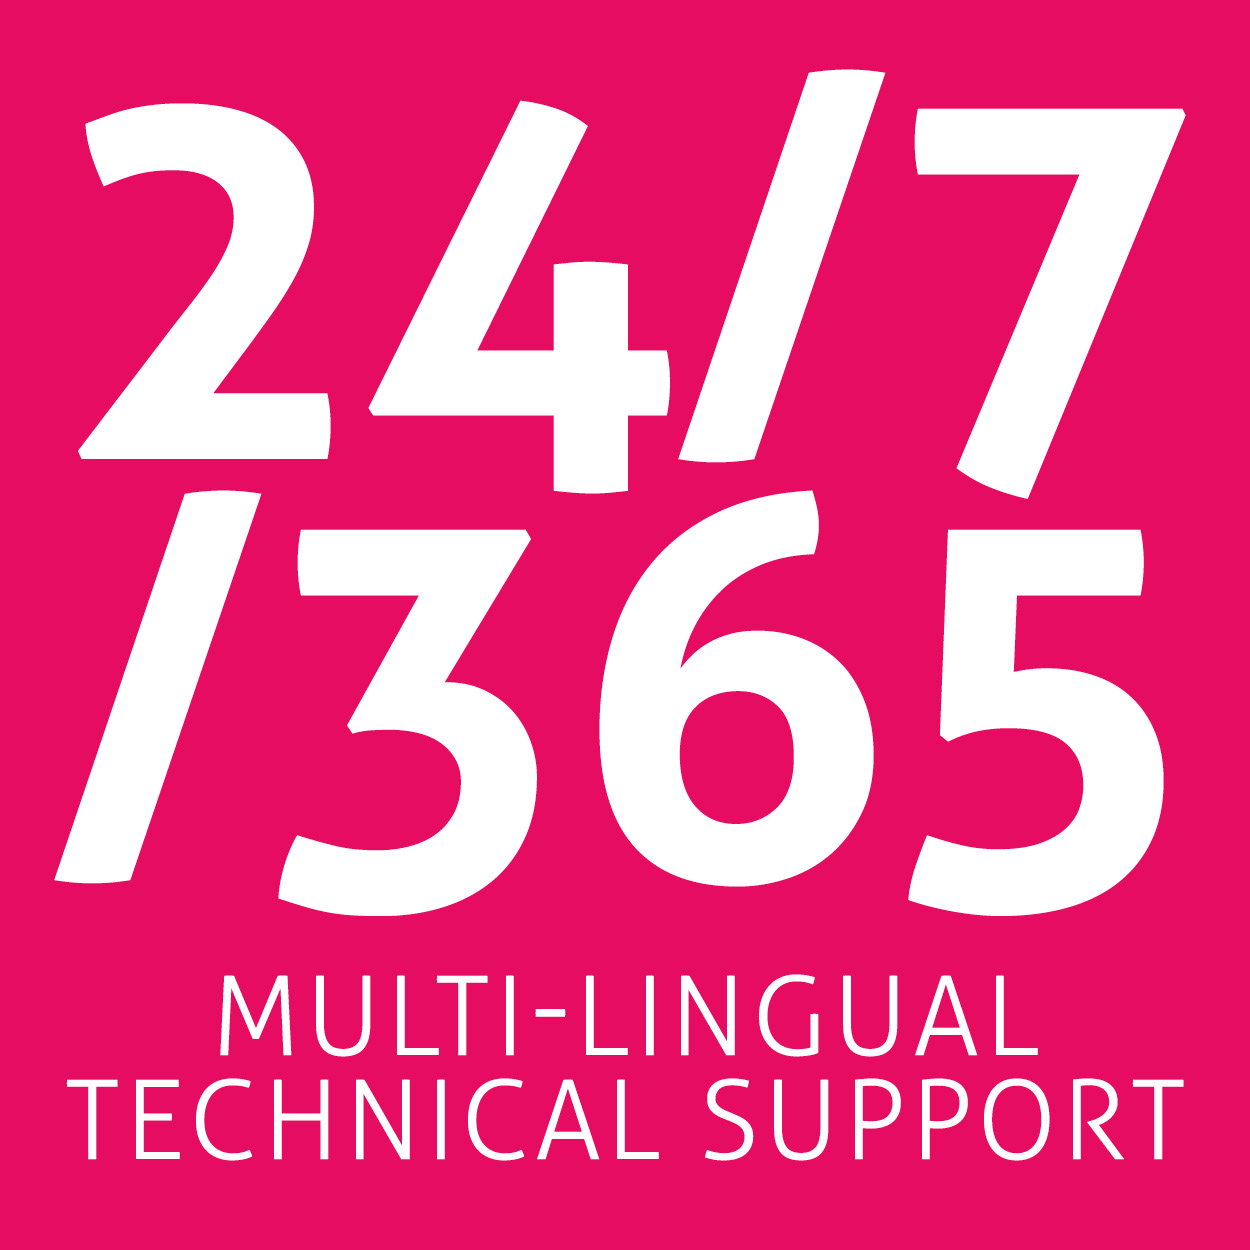 24/7/365 multi-lingual support